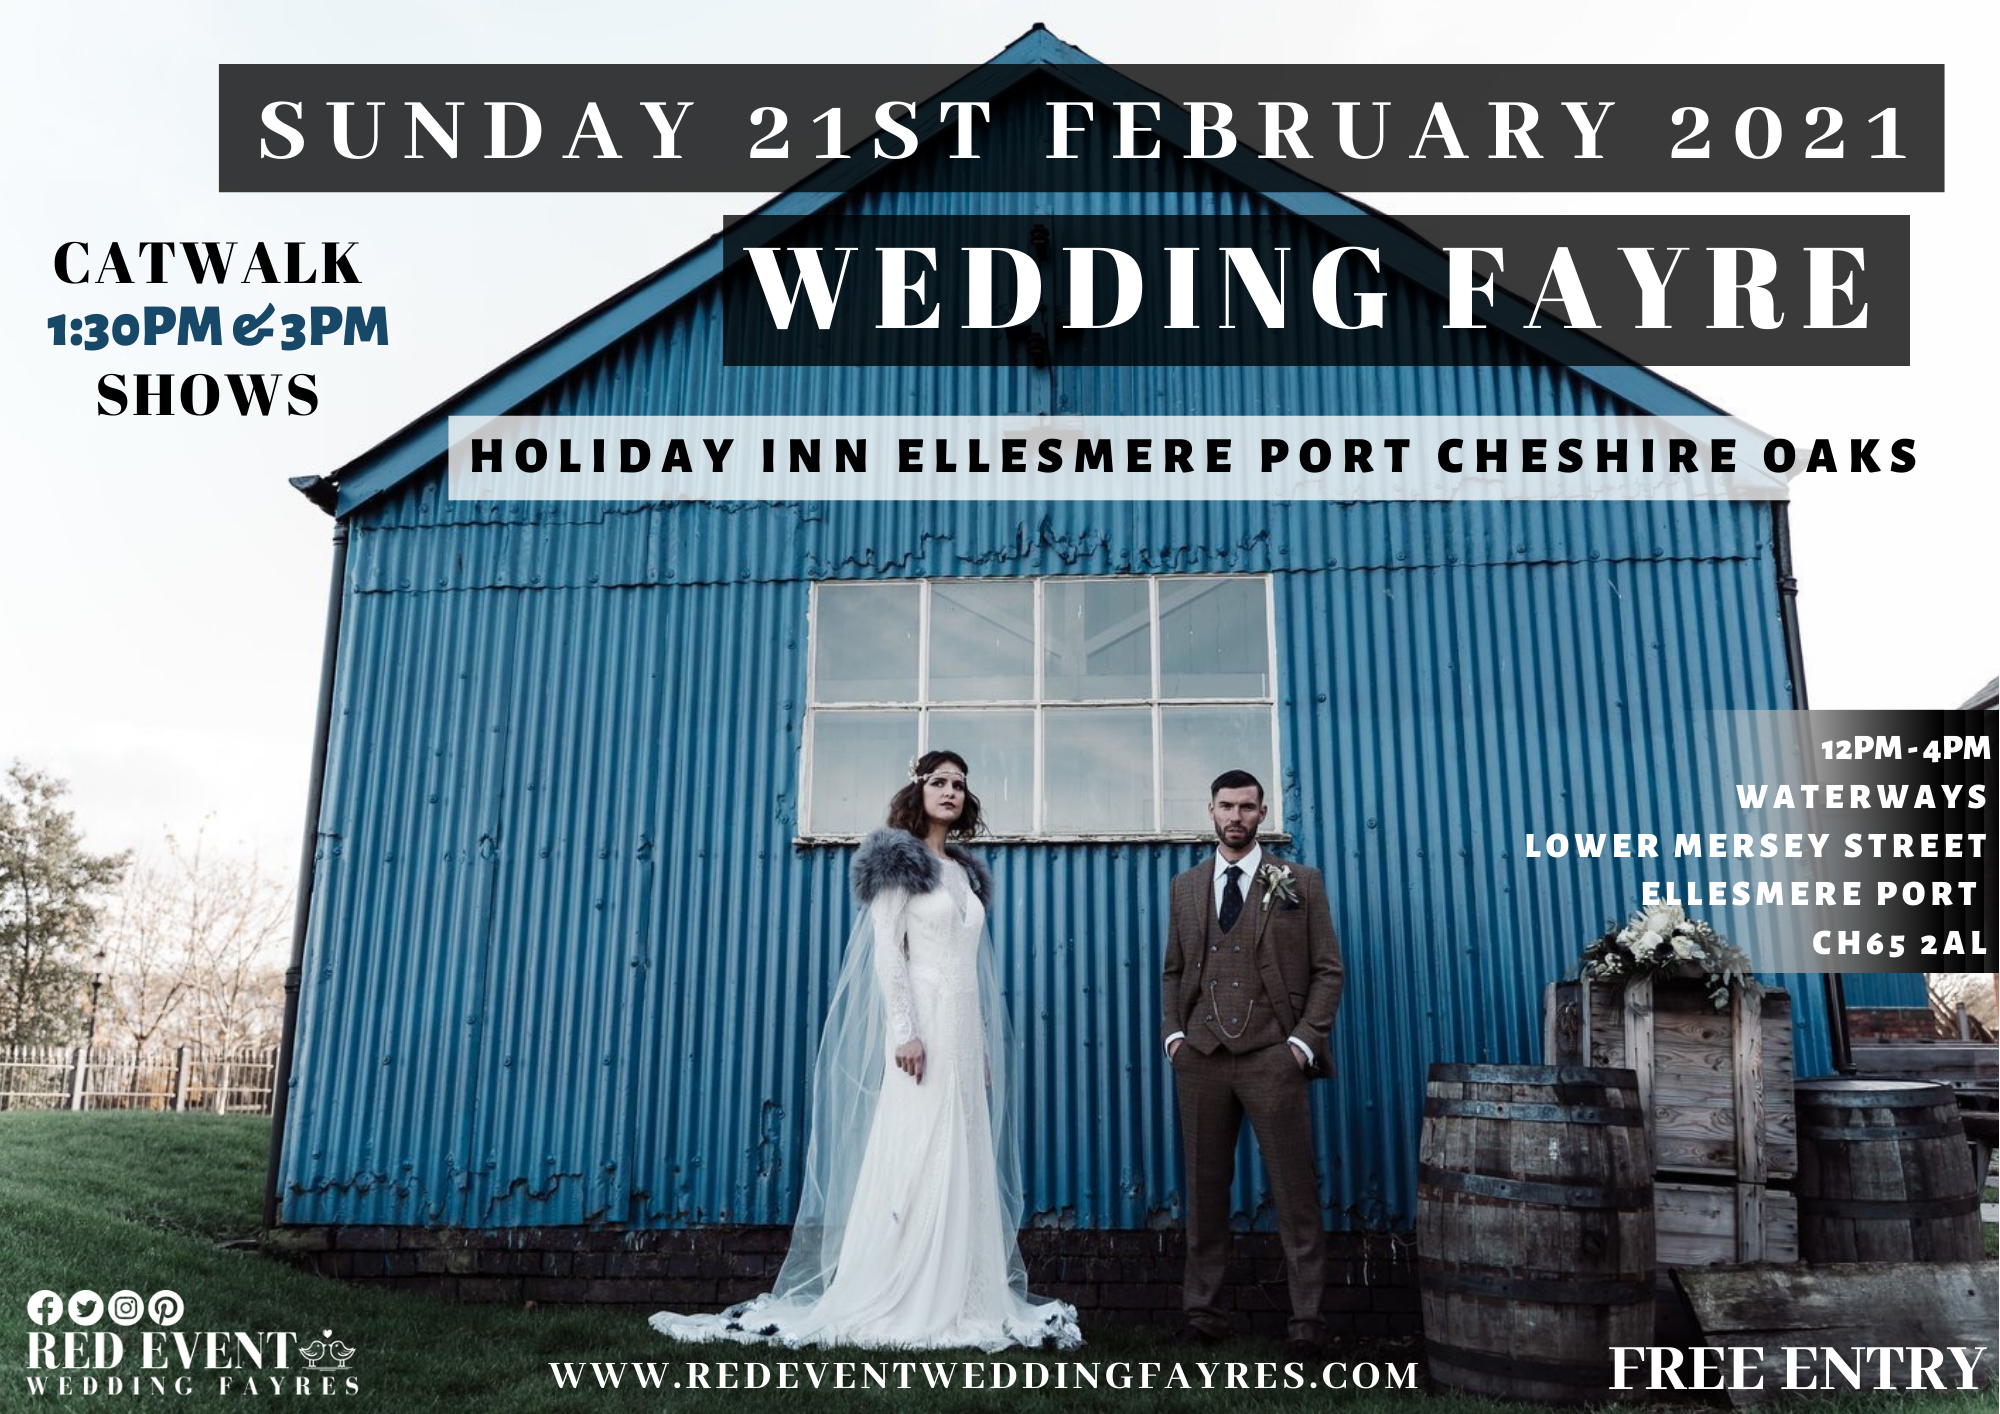 Wirral Wedding Fayre on the Canal at Holiday Inn Ellesmere Port